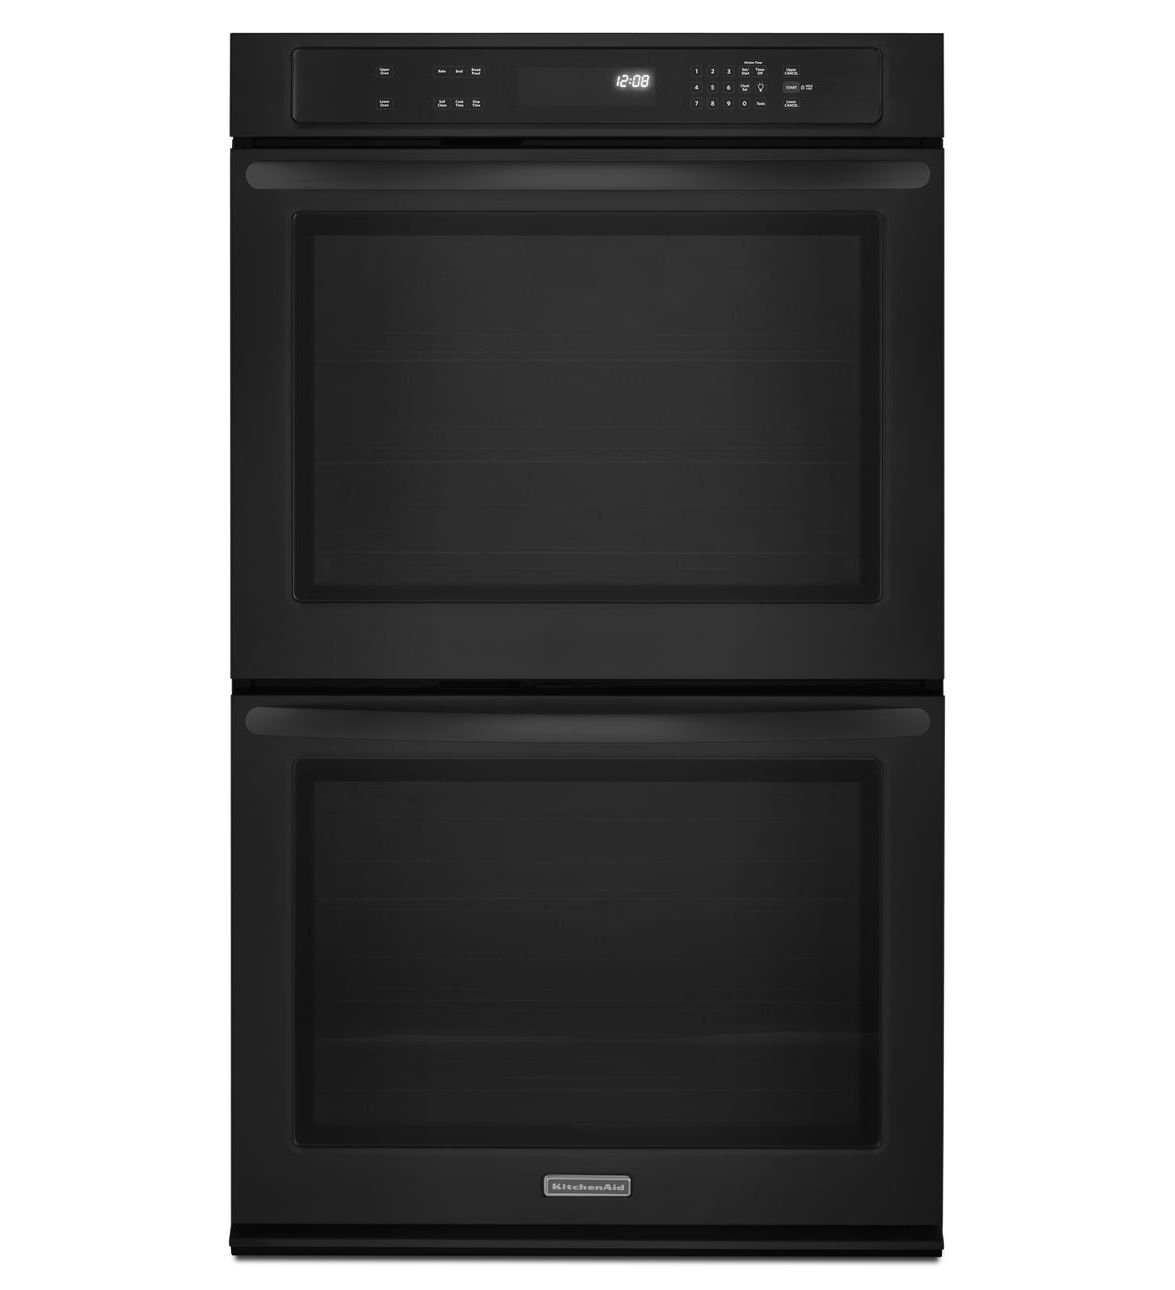 """KitchenAid KEBK206BBL 30"""" Double Thermal Wall Oven with 5.0 cu. ft. Capacity, 2 Oven Racks, EvenHeat Technology, Halogen Lighting, Self-Cleaning and Glass Touch Display"""